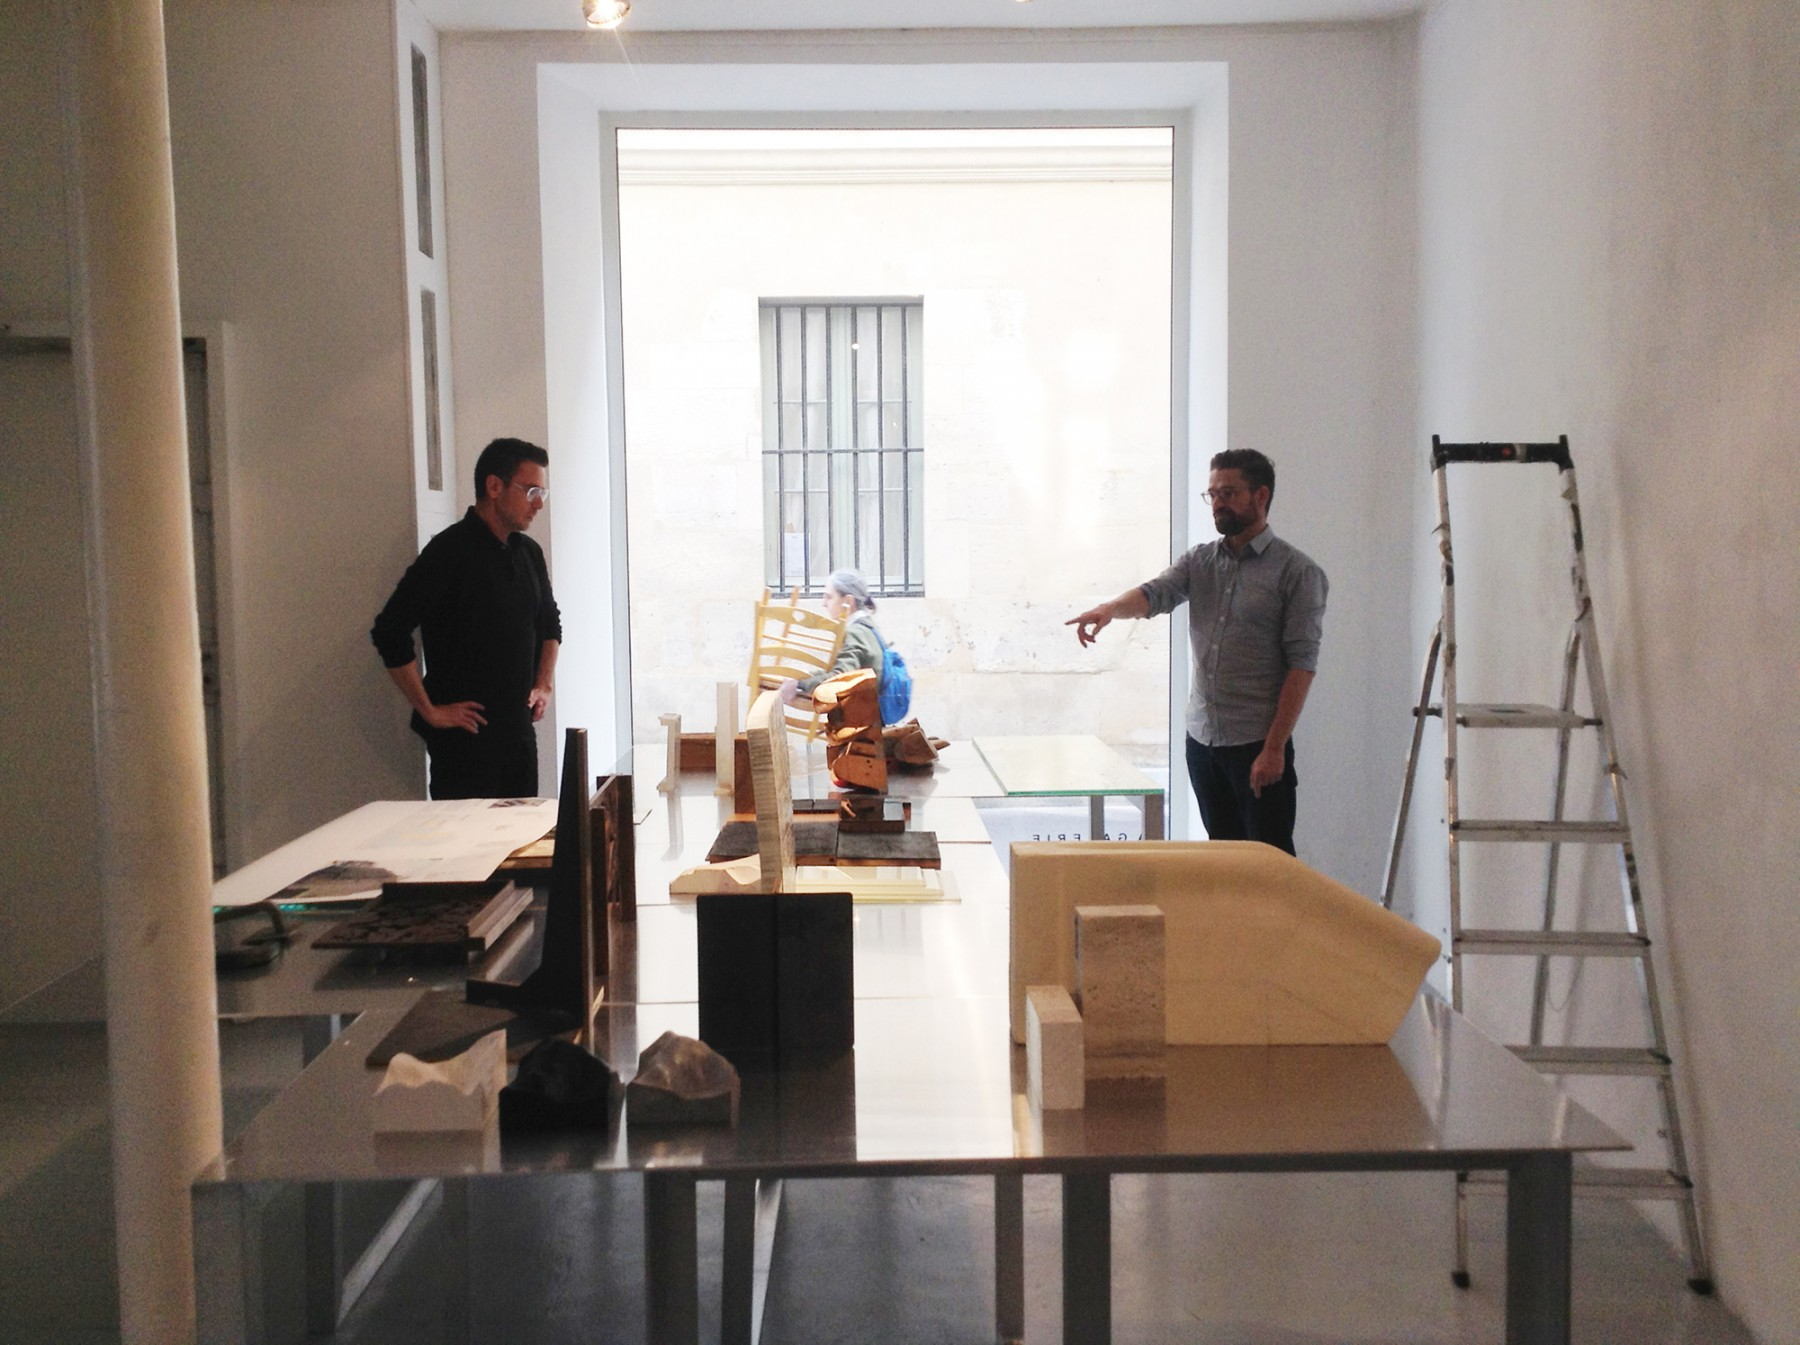 Jamie-Fobert-Architects-working-in-architecture-exhibition-installation-development (3)